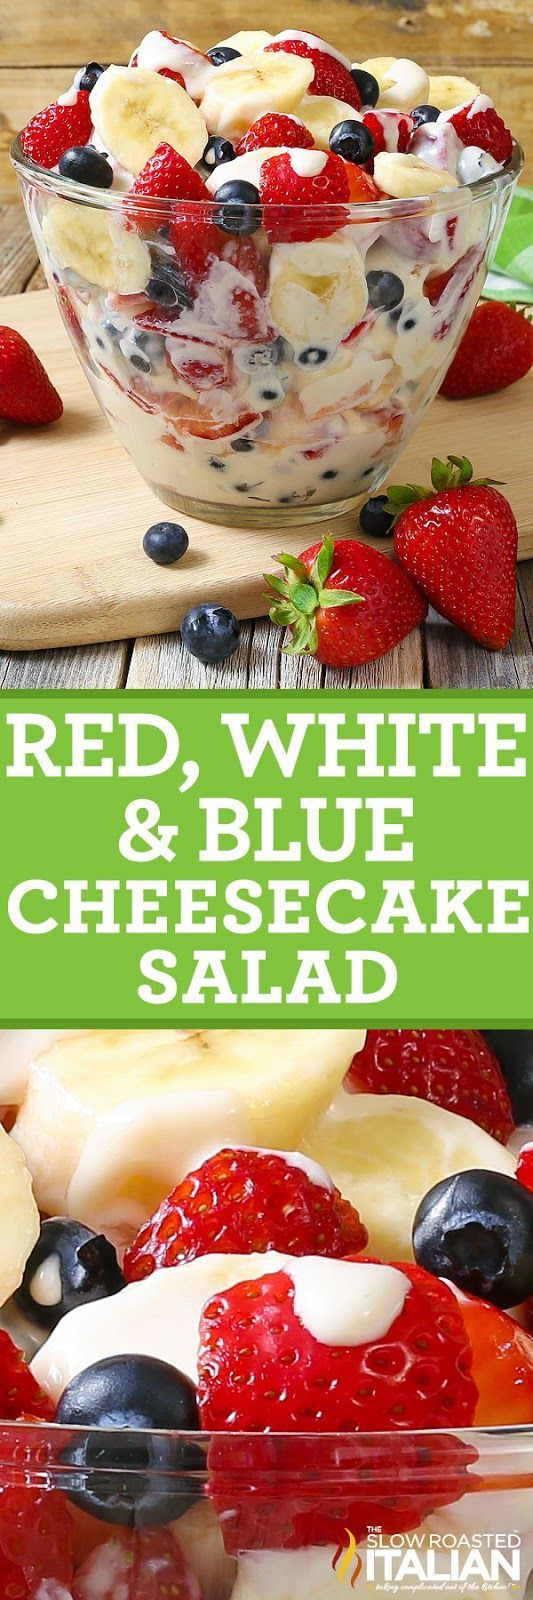 Red, White and Blue Cheesecake Salad comes together so easy with fresh fruit and a rich and creamy cheesecake filling to create the most glorious fruit salad ever! Every bite is absolutely bursting with summer flavor and your 4th of July guests are going to go nuts over this recipe!